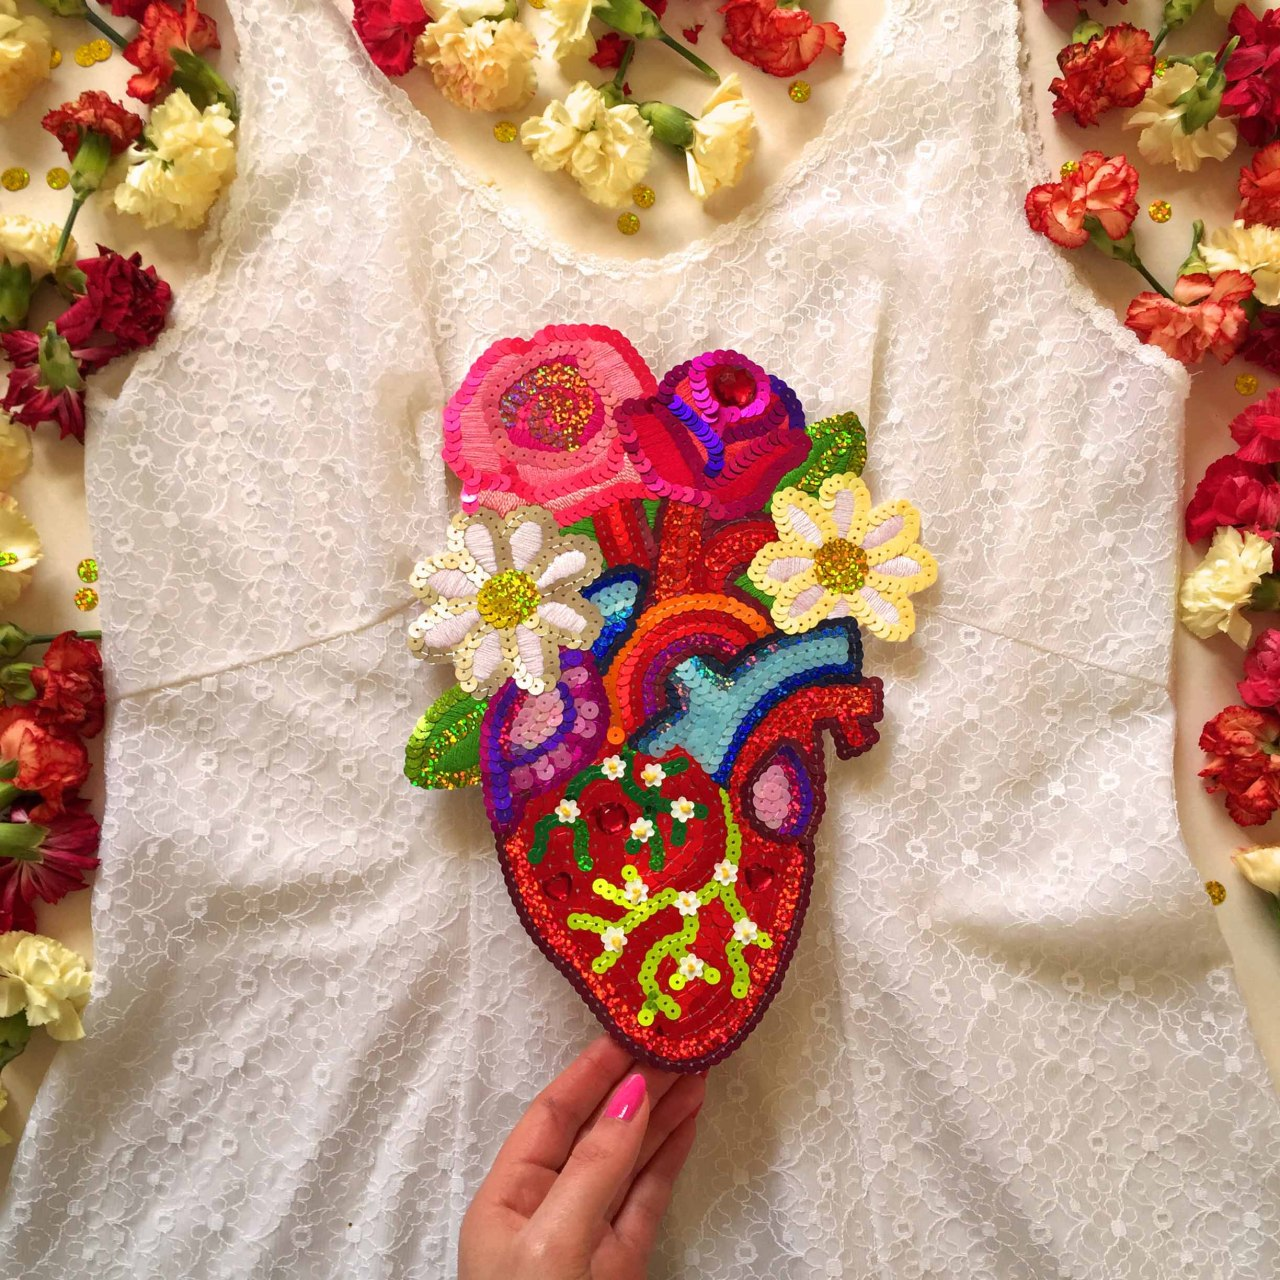 embroidered anatomical heart in bloom, 2016, Sophie King